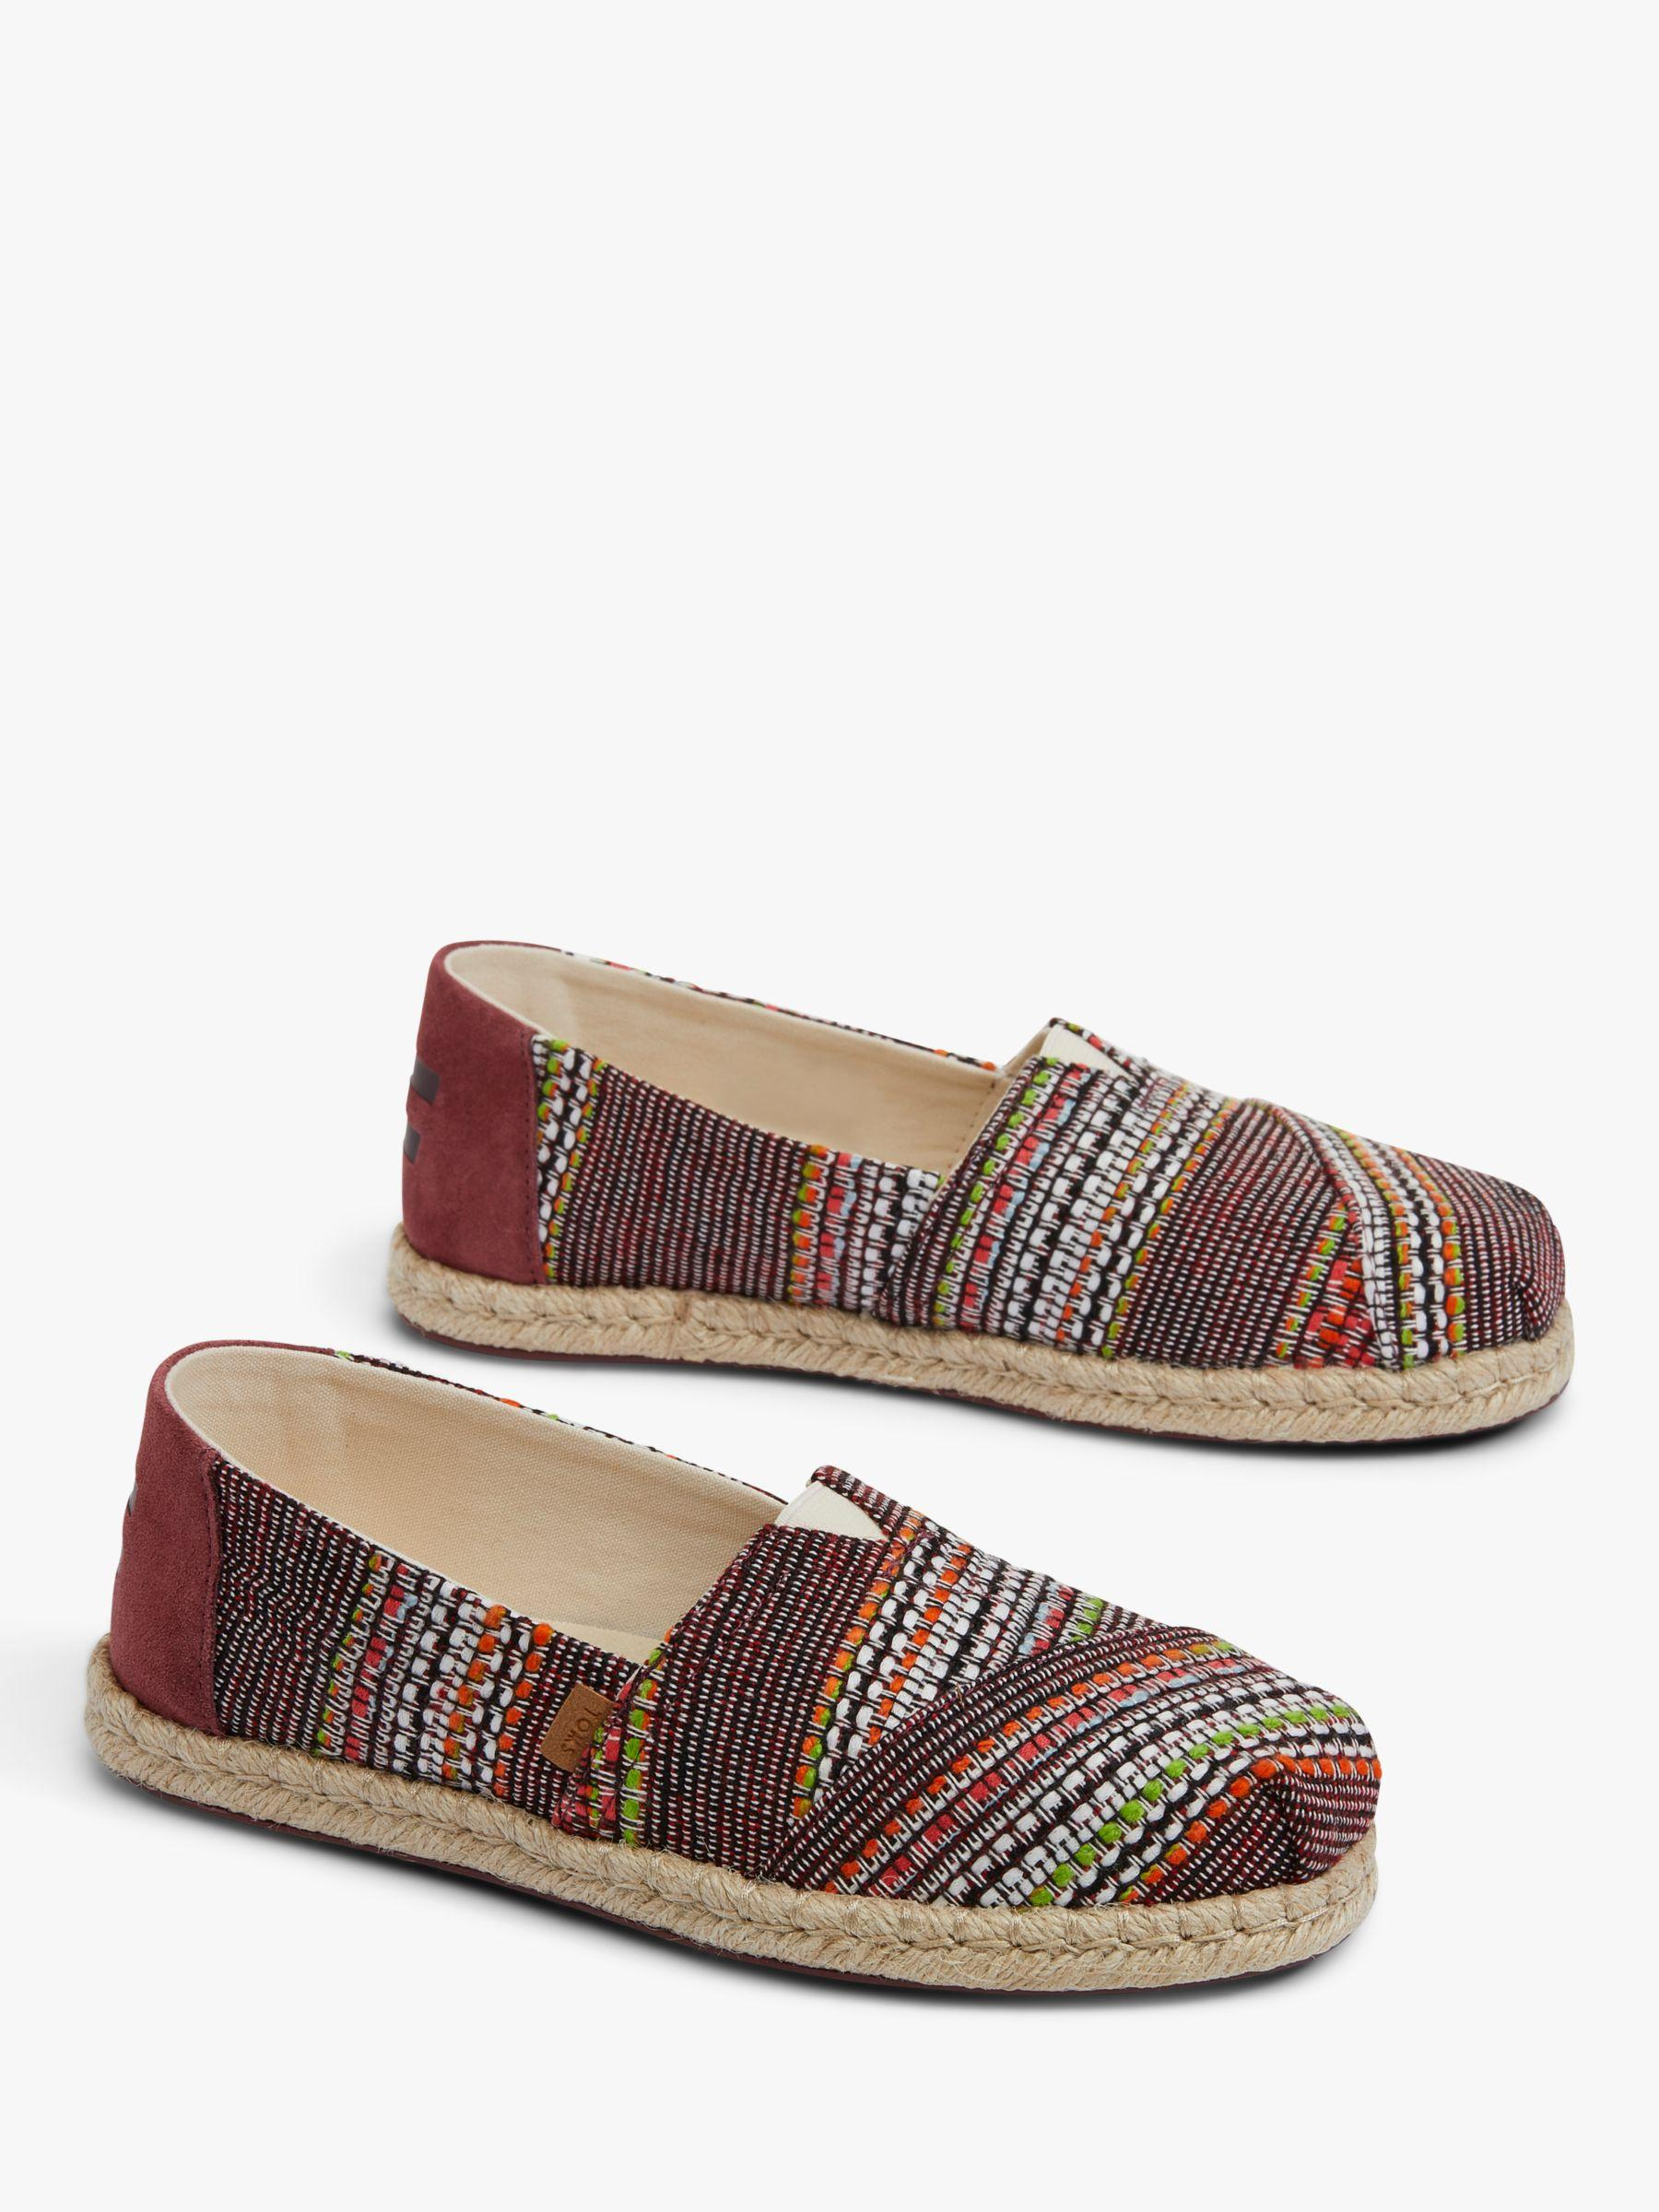 2d631b4b3eb TOMS Alpargata Embroidered Espadrilles in Brown - Lyst